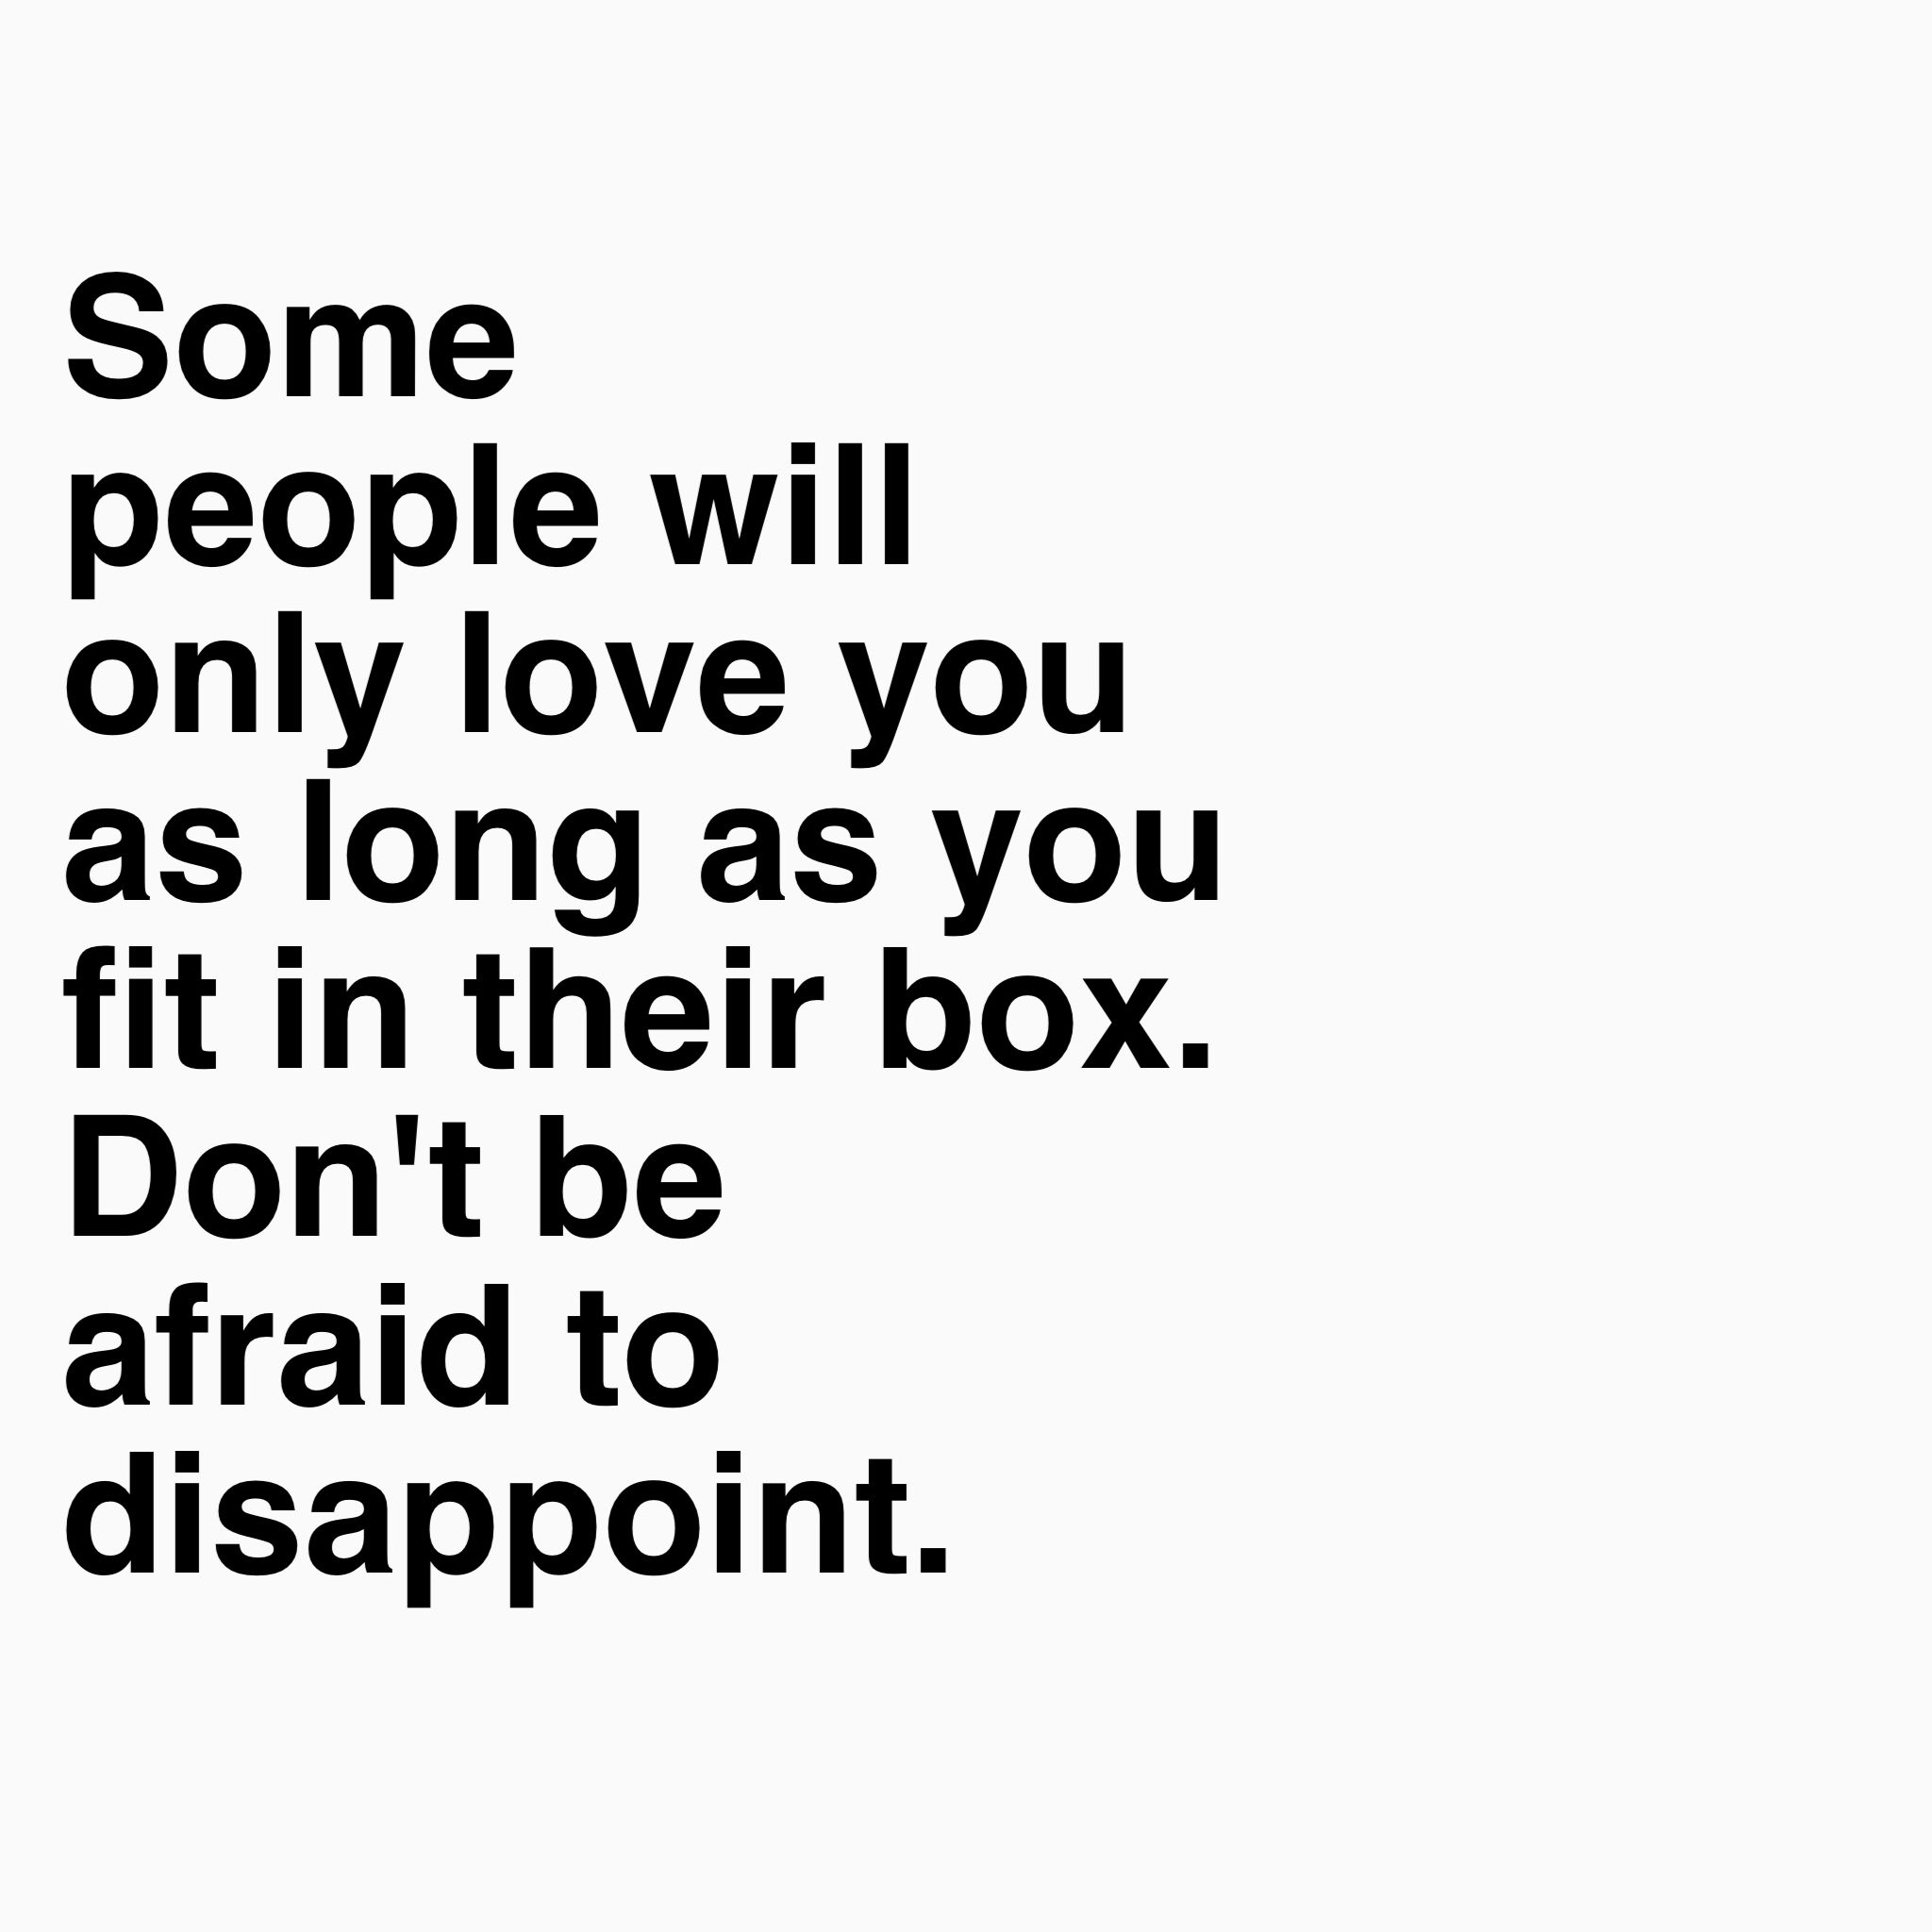 Some people will only love you as long as you fit in their box Don